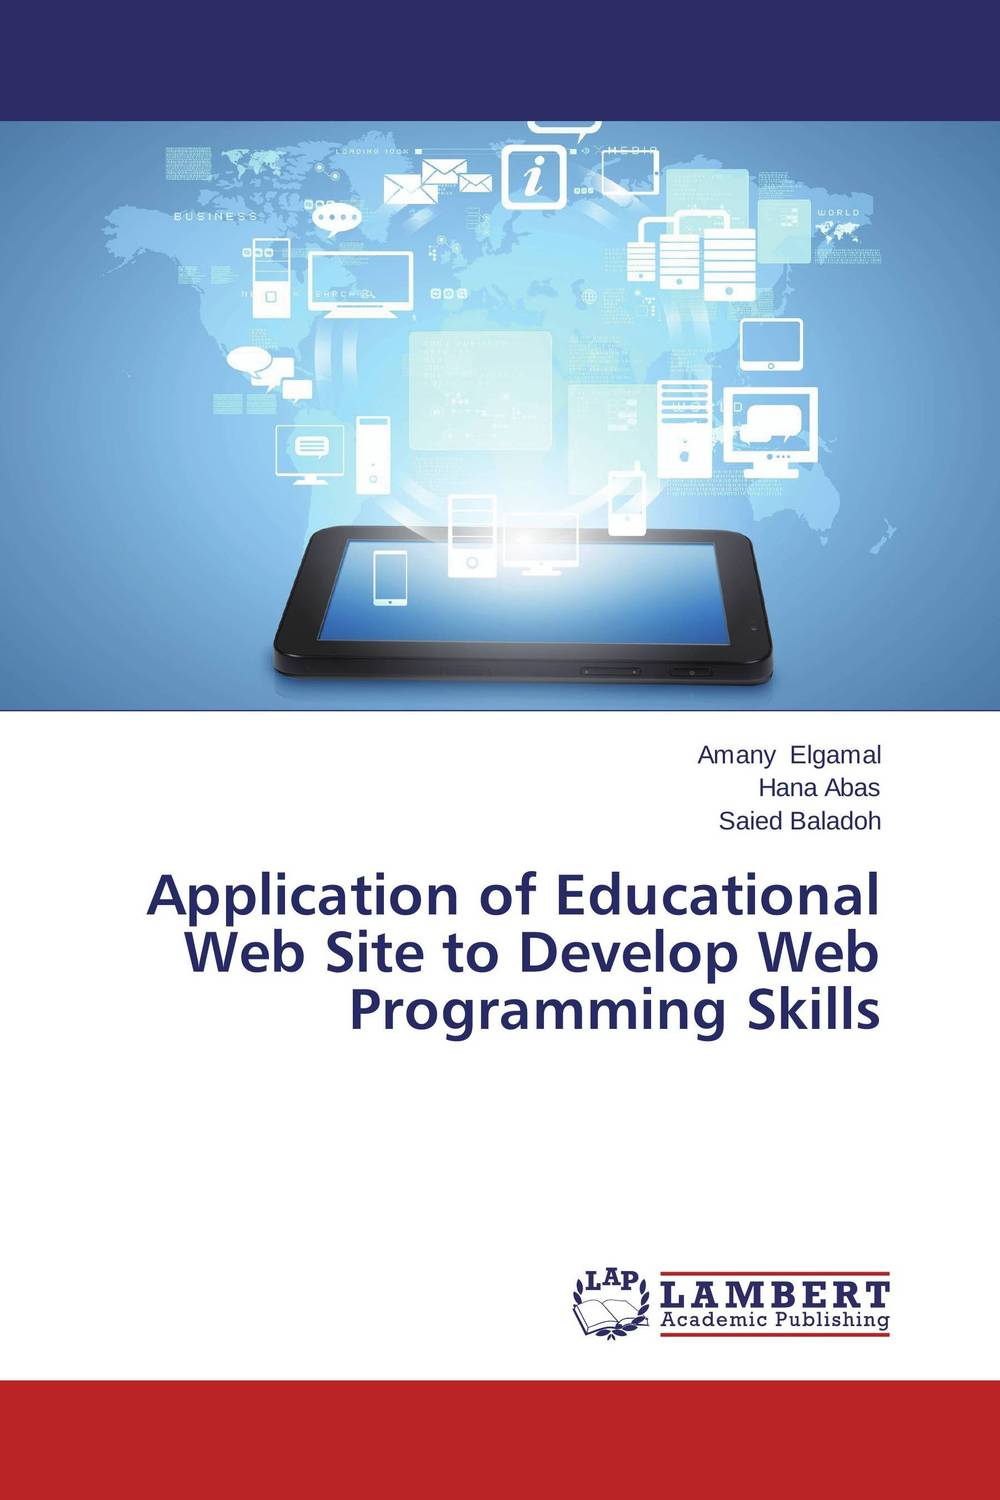 Application of Educational Web Site to Develop Web Programming Skills